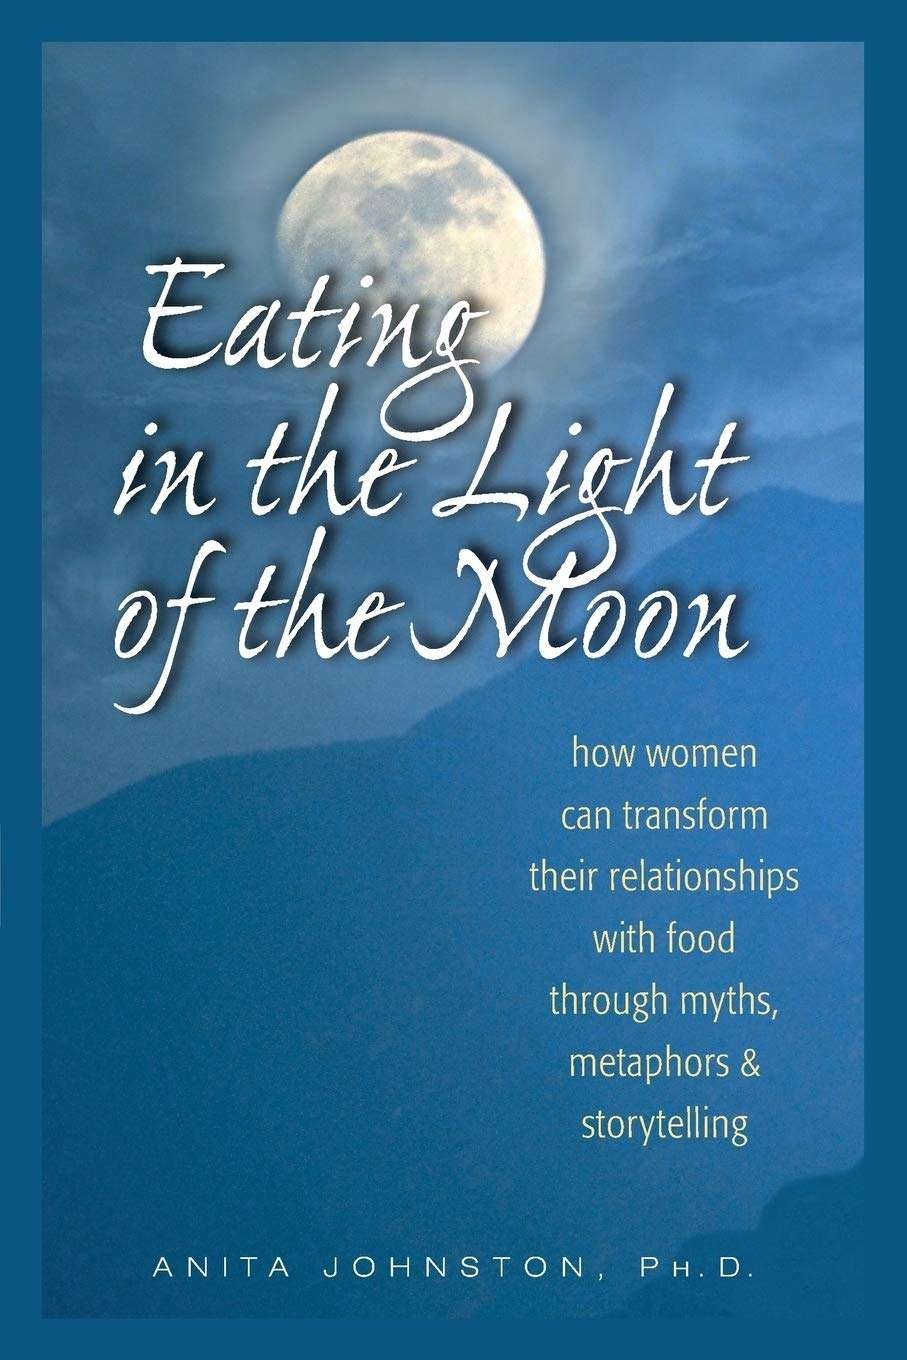 ED book eating in the light of the moon